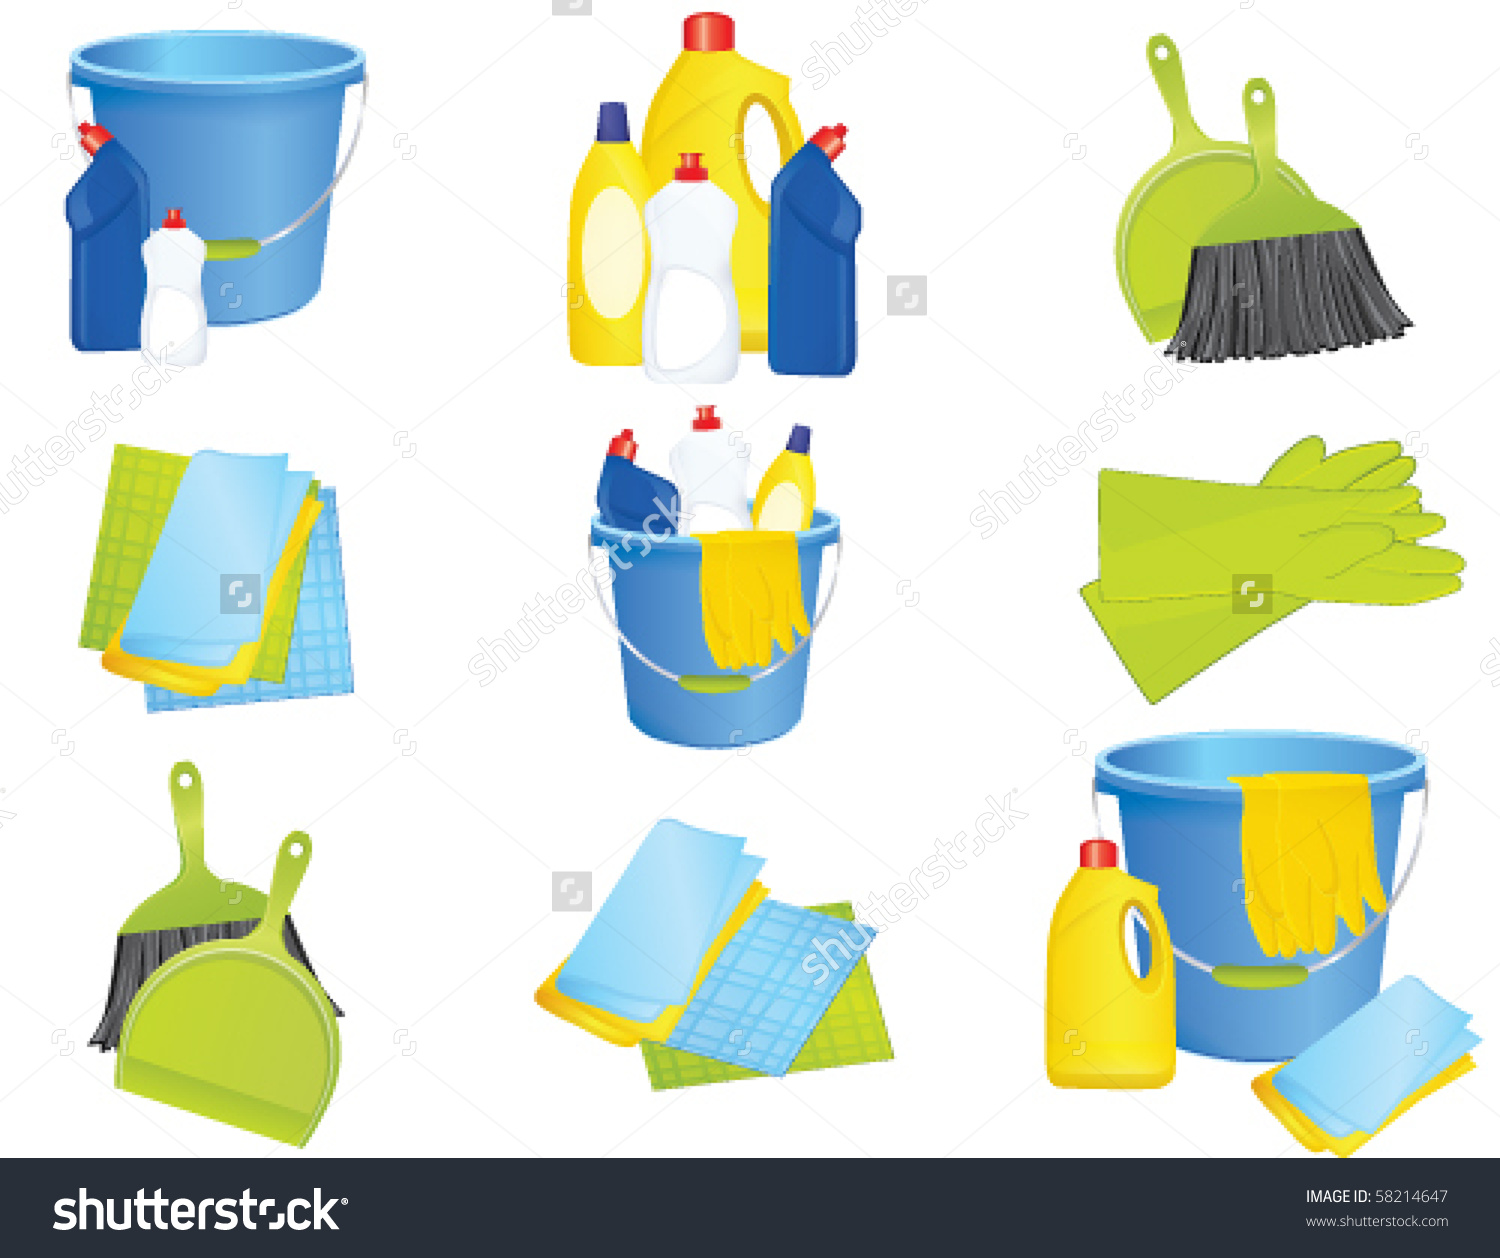 Supplies x making the. Awesome clipart cleaning